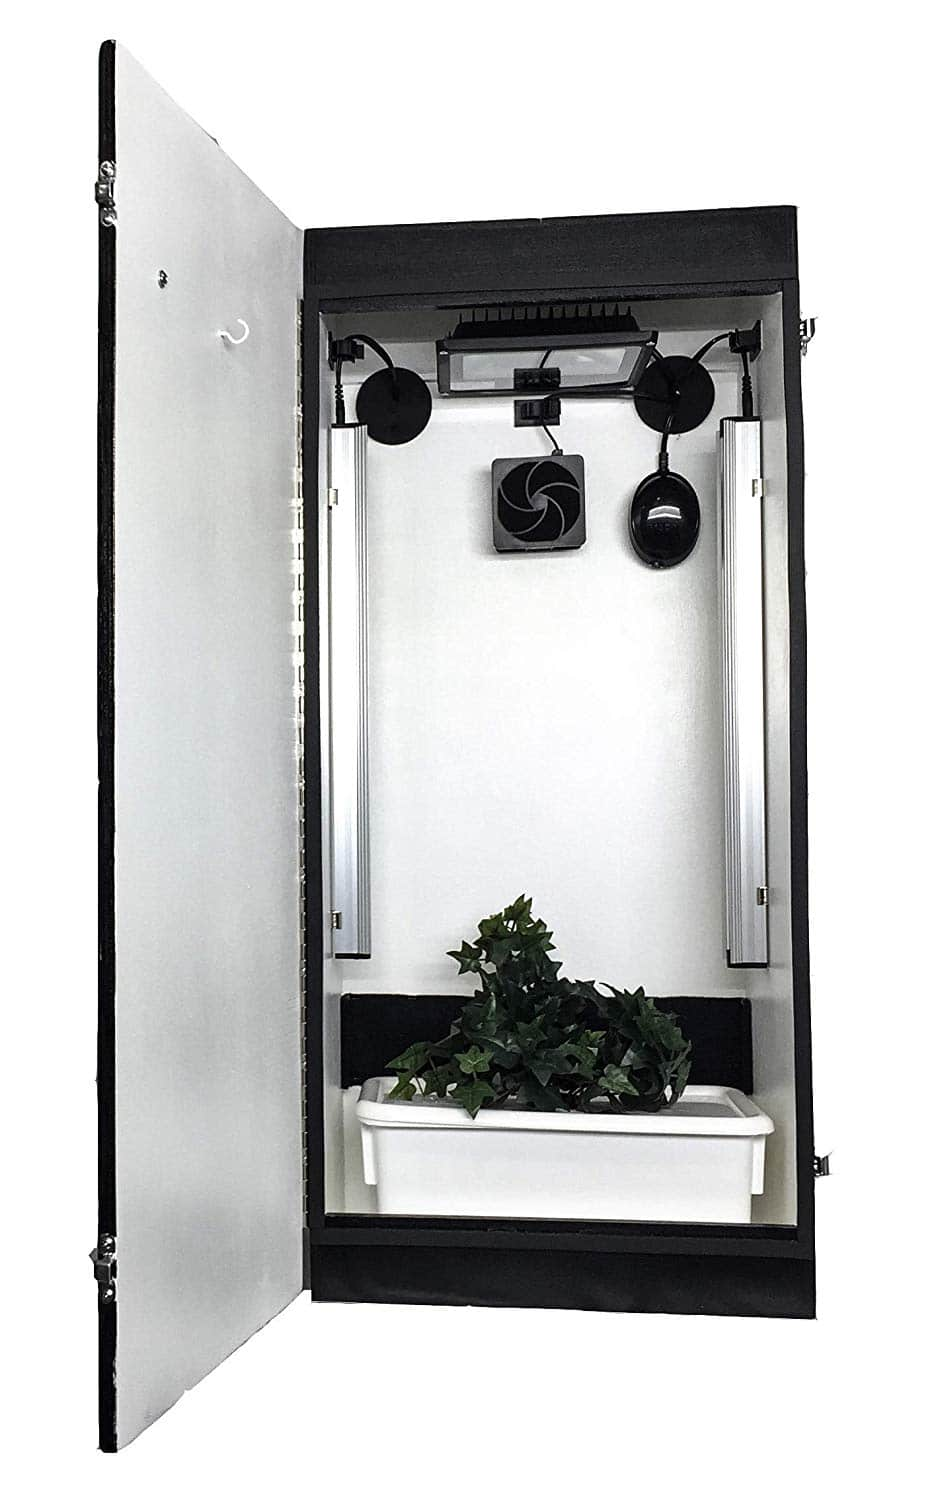 Cash Crop 6.0-2 Plant Hydroponics LED Grow Box